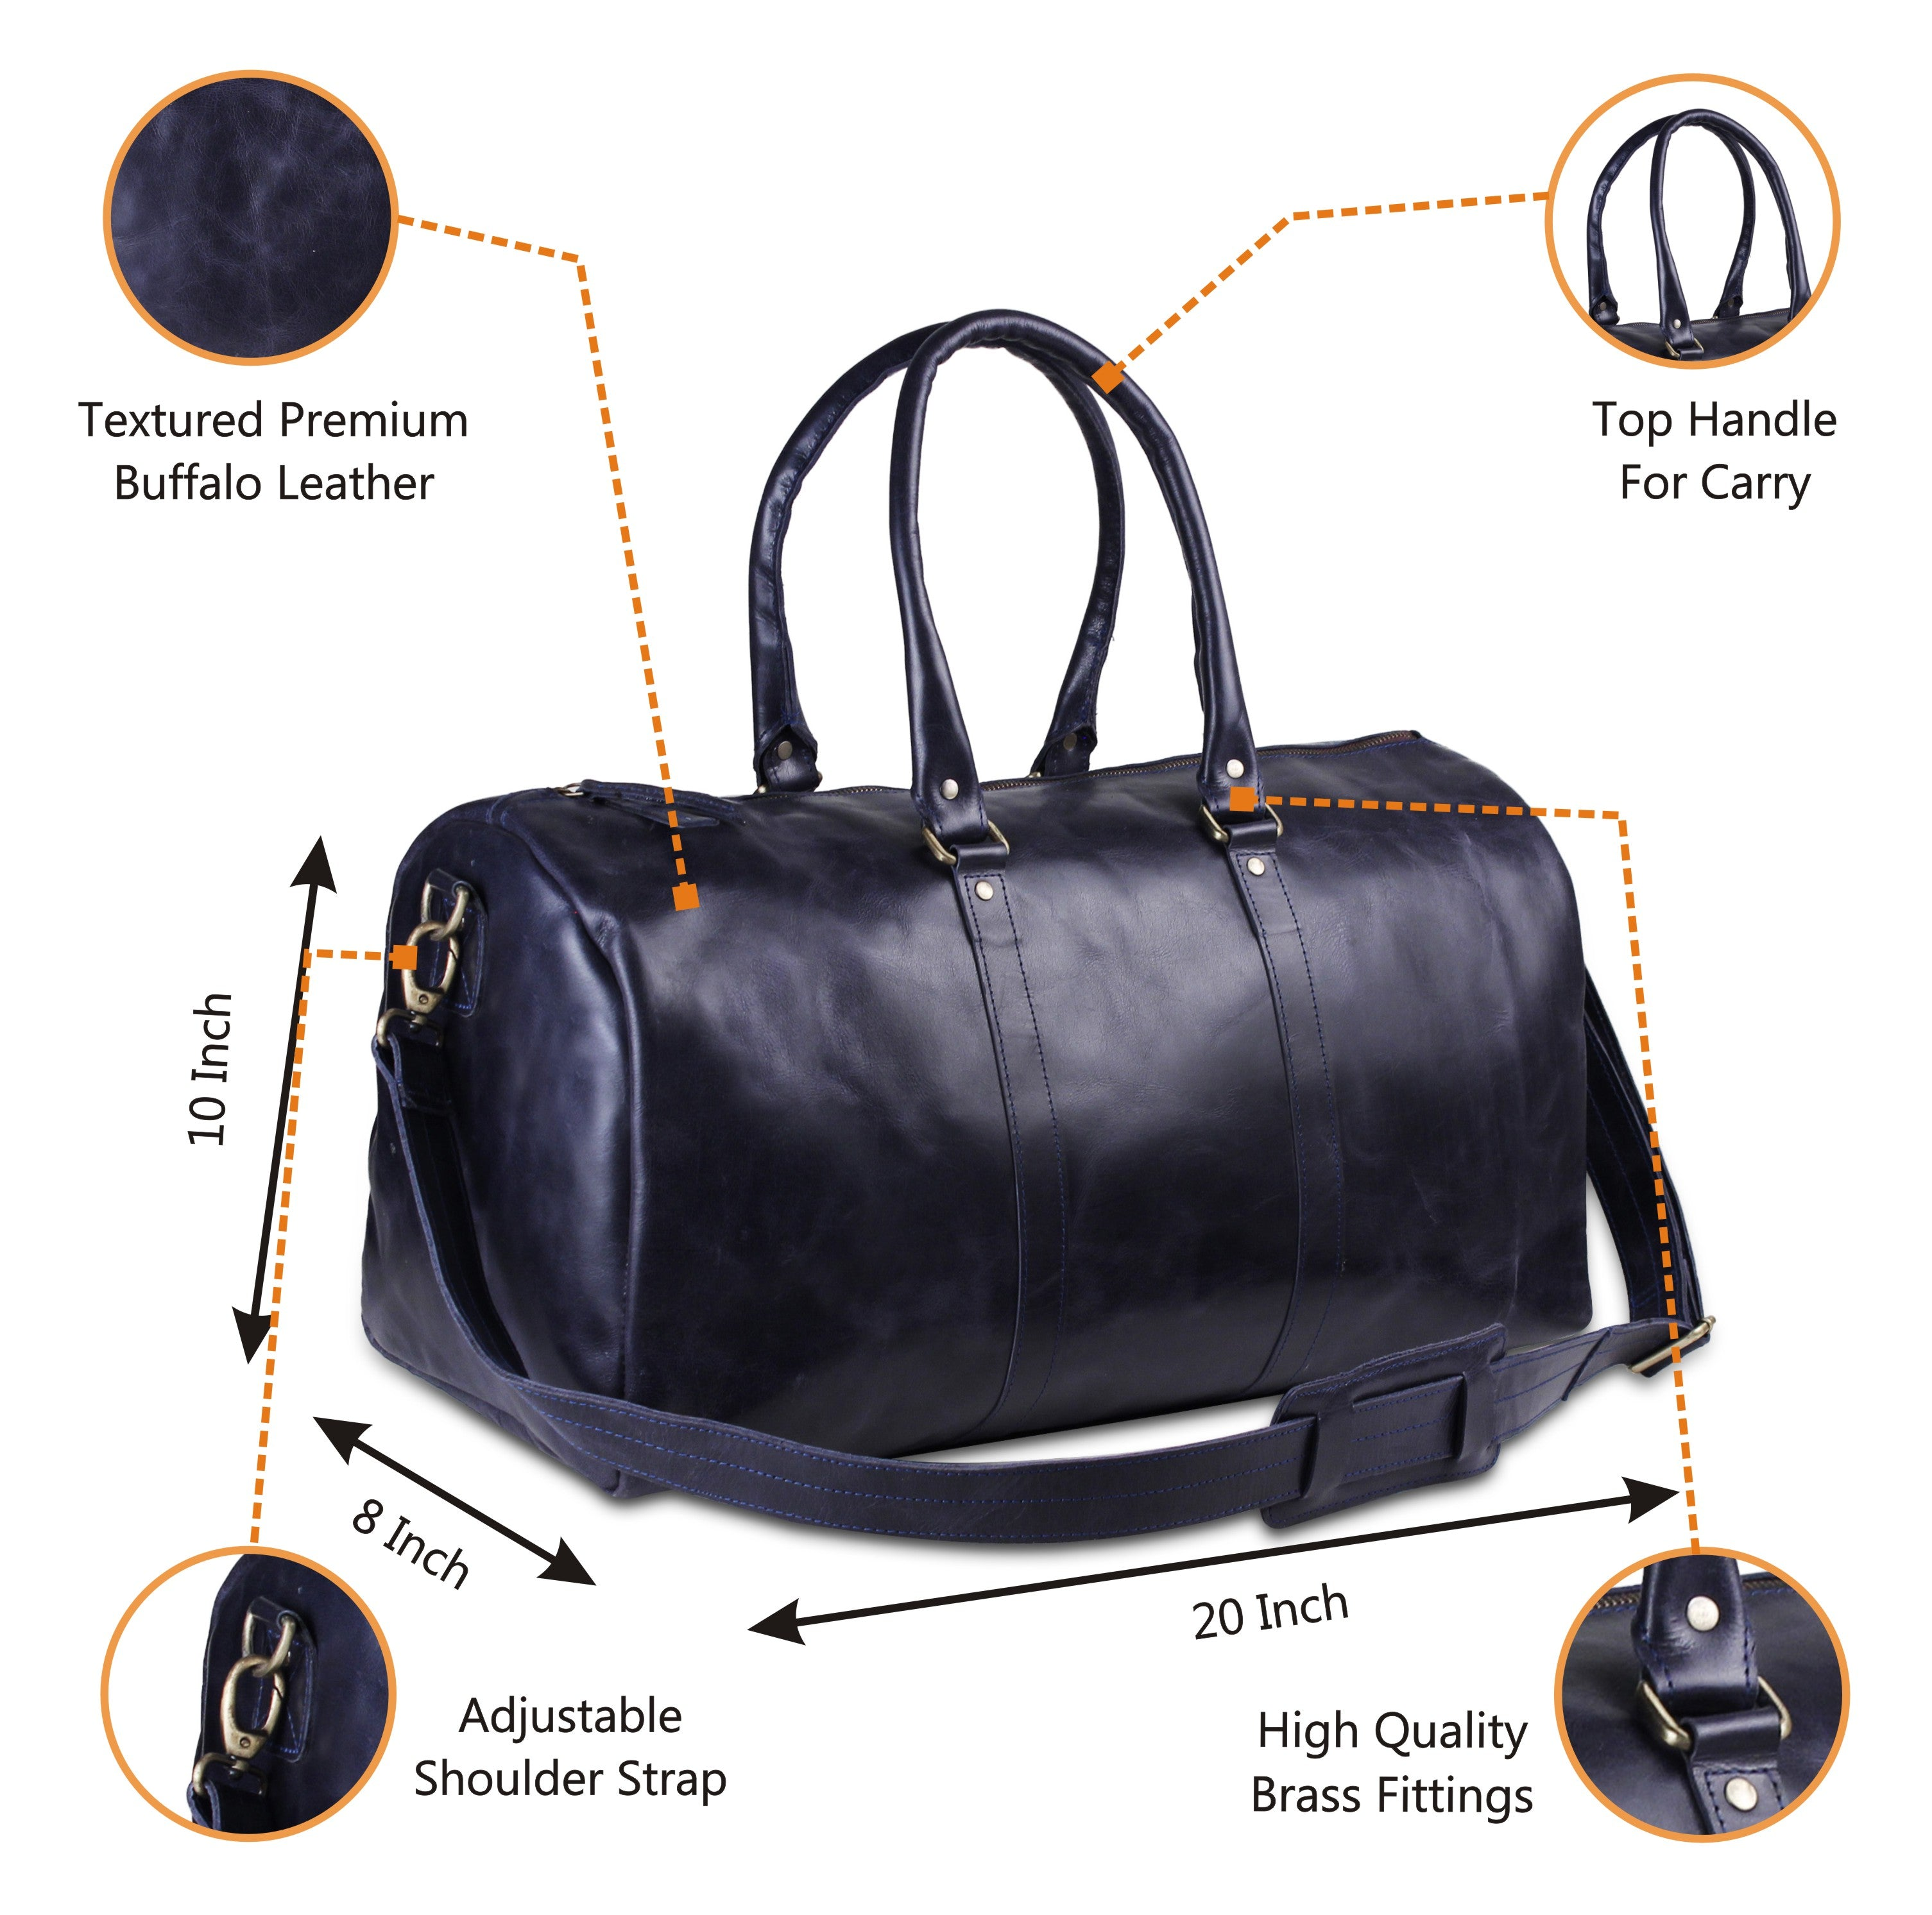 Large Travel Bag with Top Handle- Dark Blue